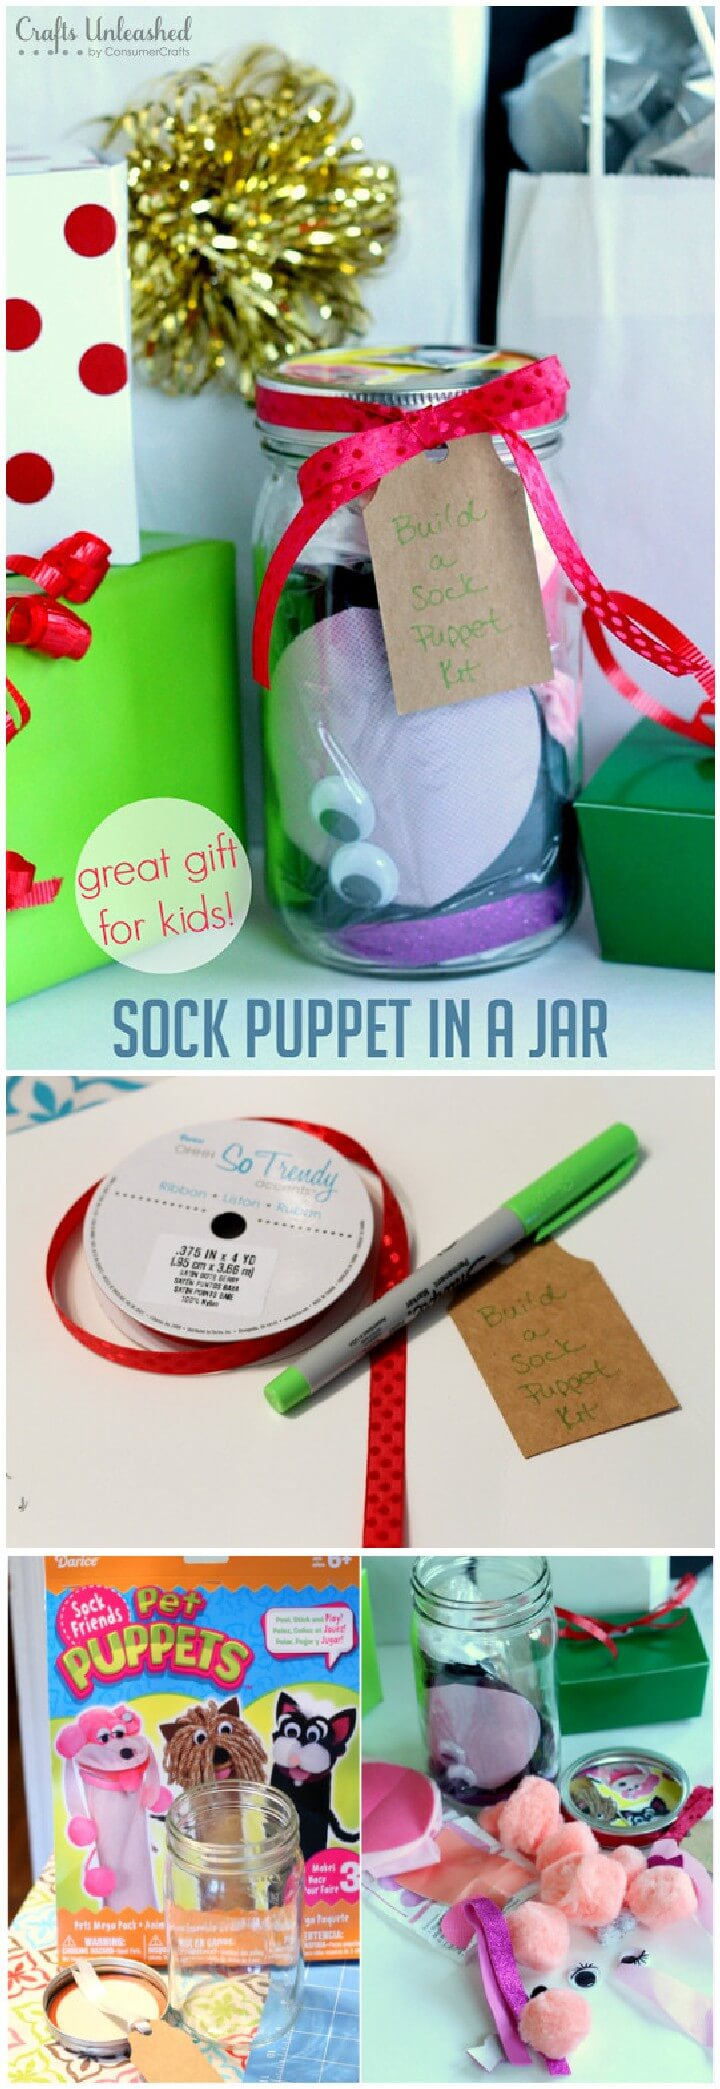 DIY Sock Puppet in Mason jar Kids Gift